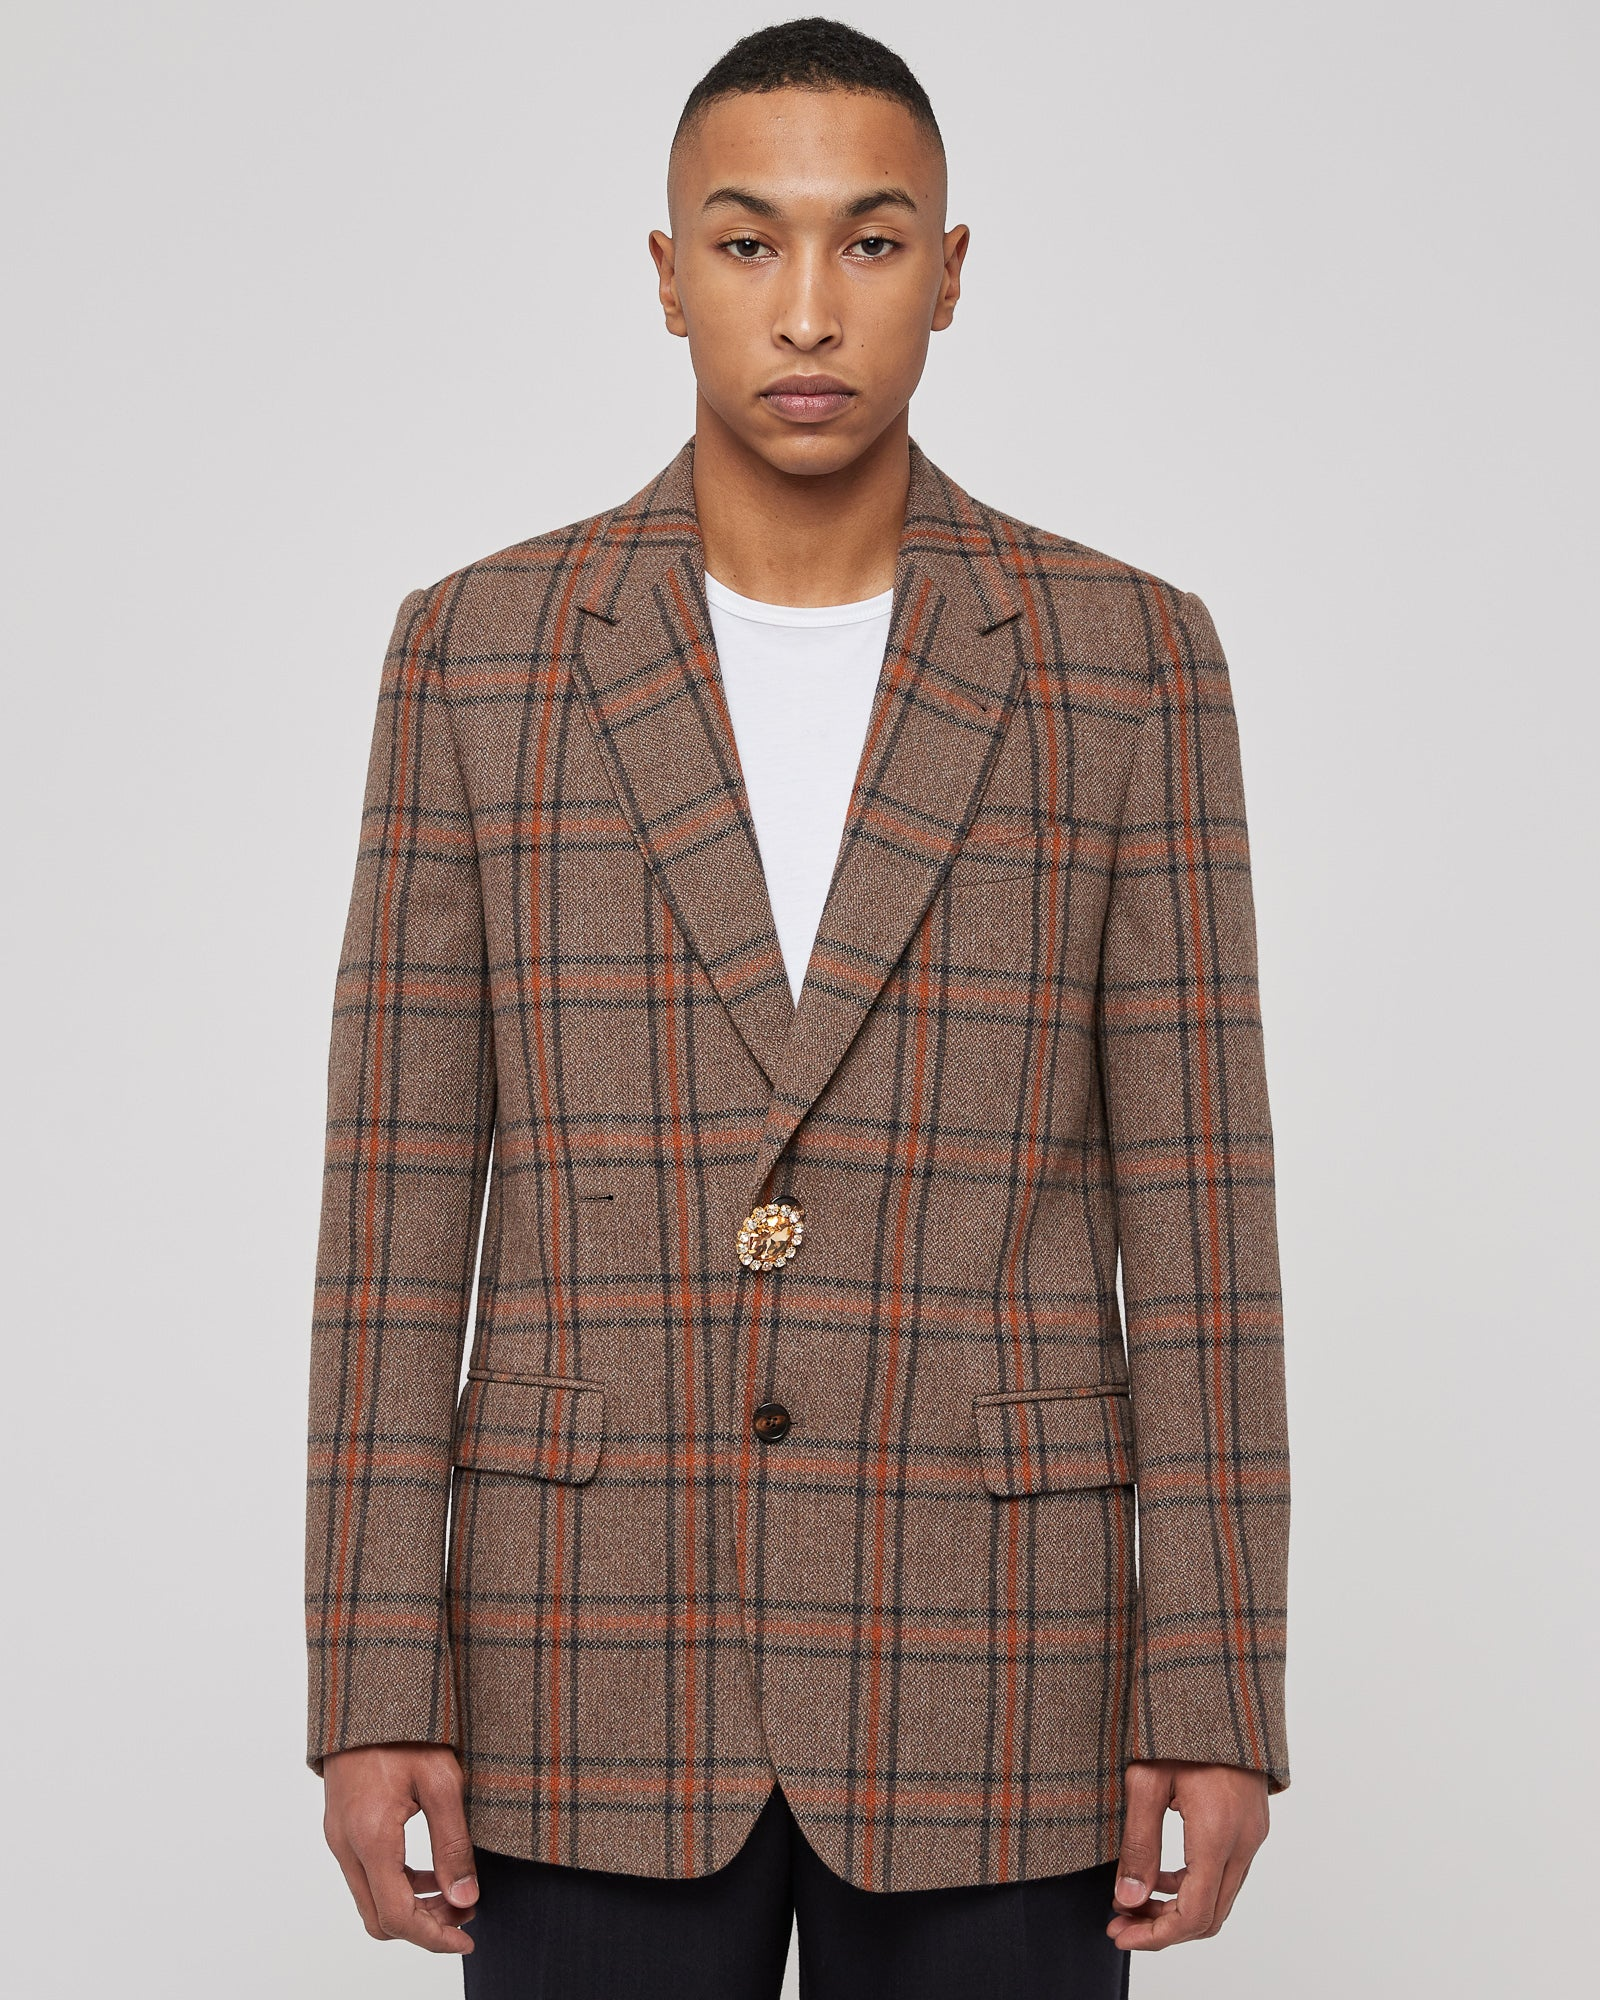 Bury Bis Jacket in Brown